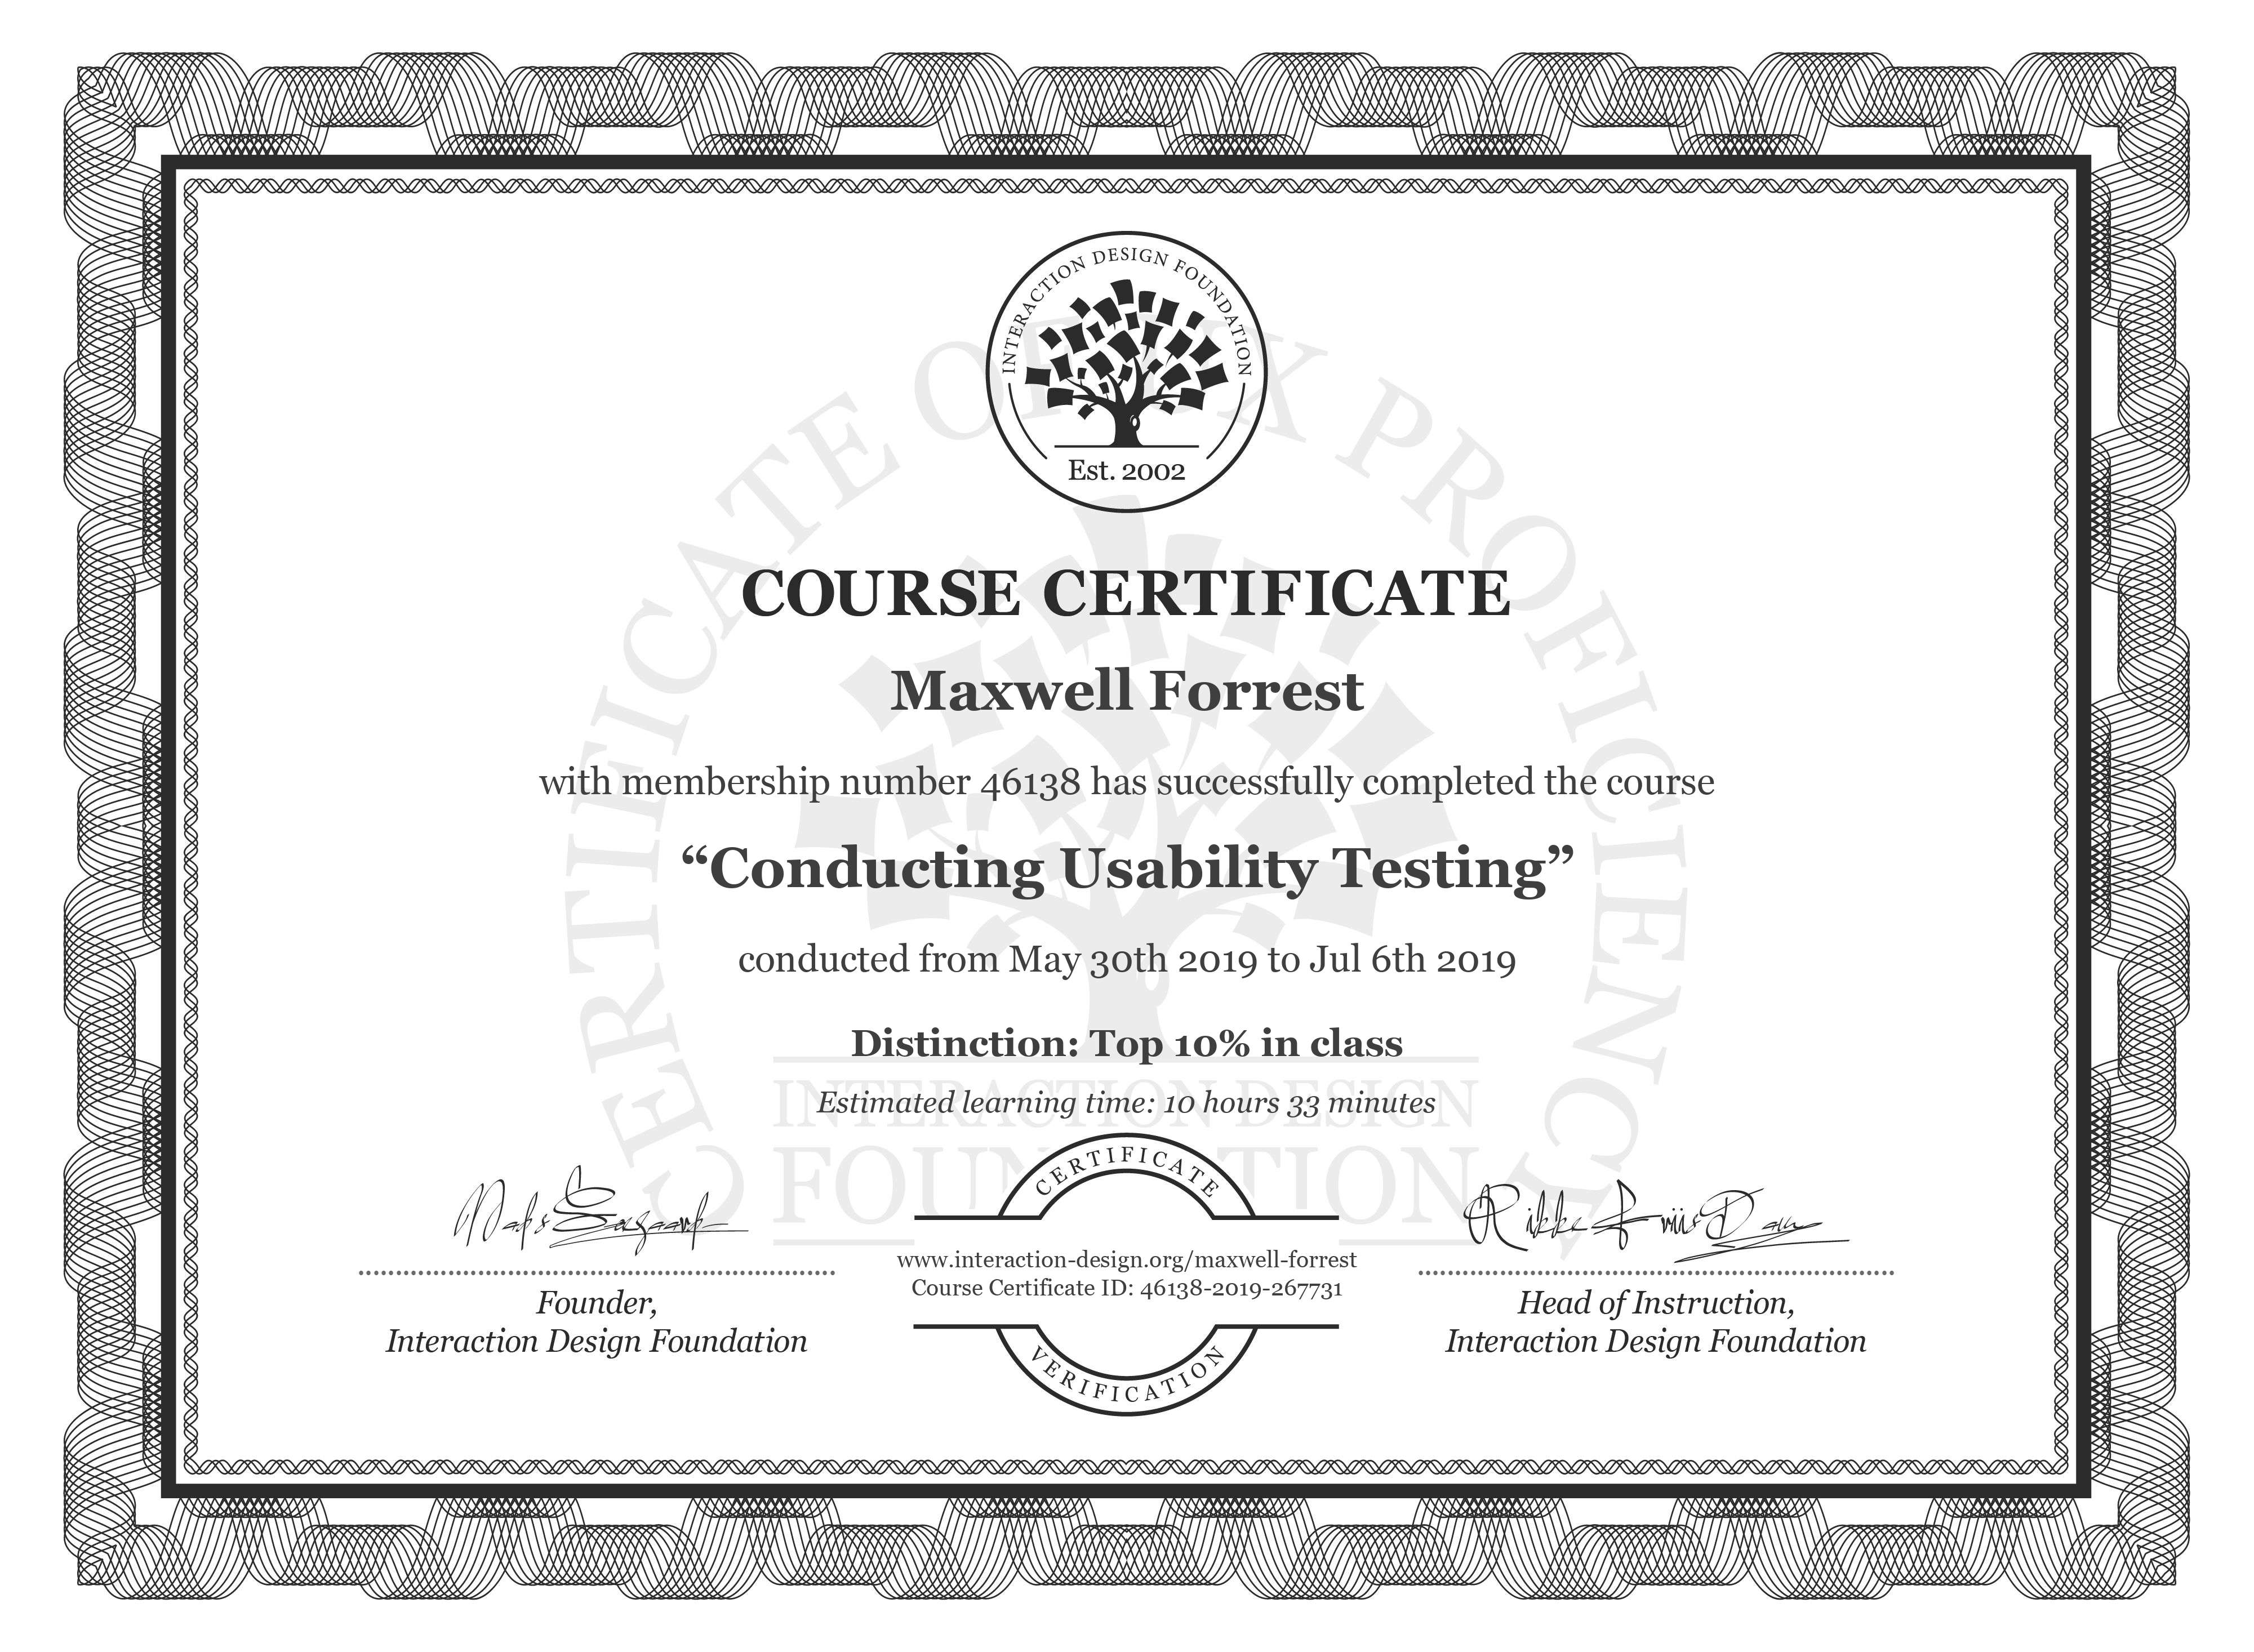 Maxwell Forrest: Course Certificate - Conducting Usability Testing